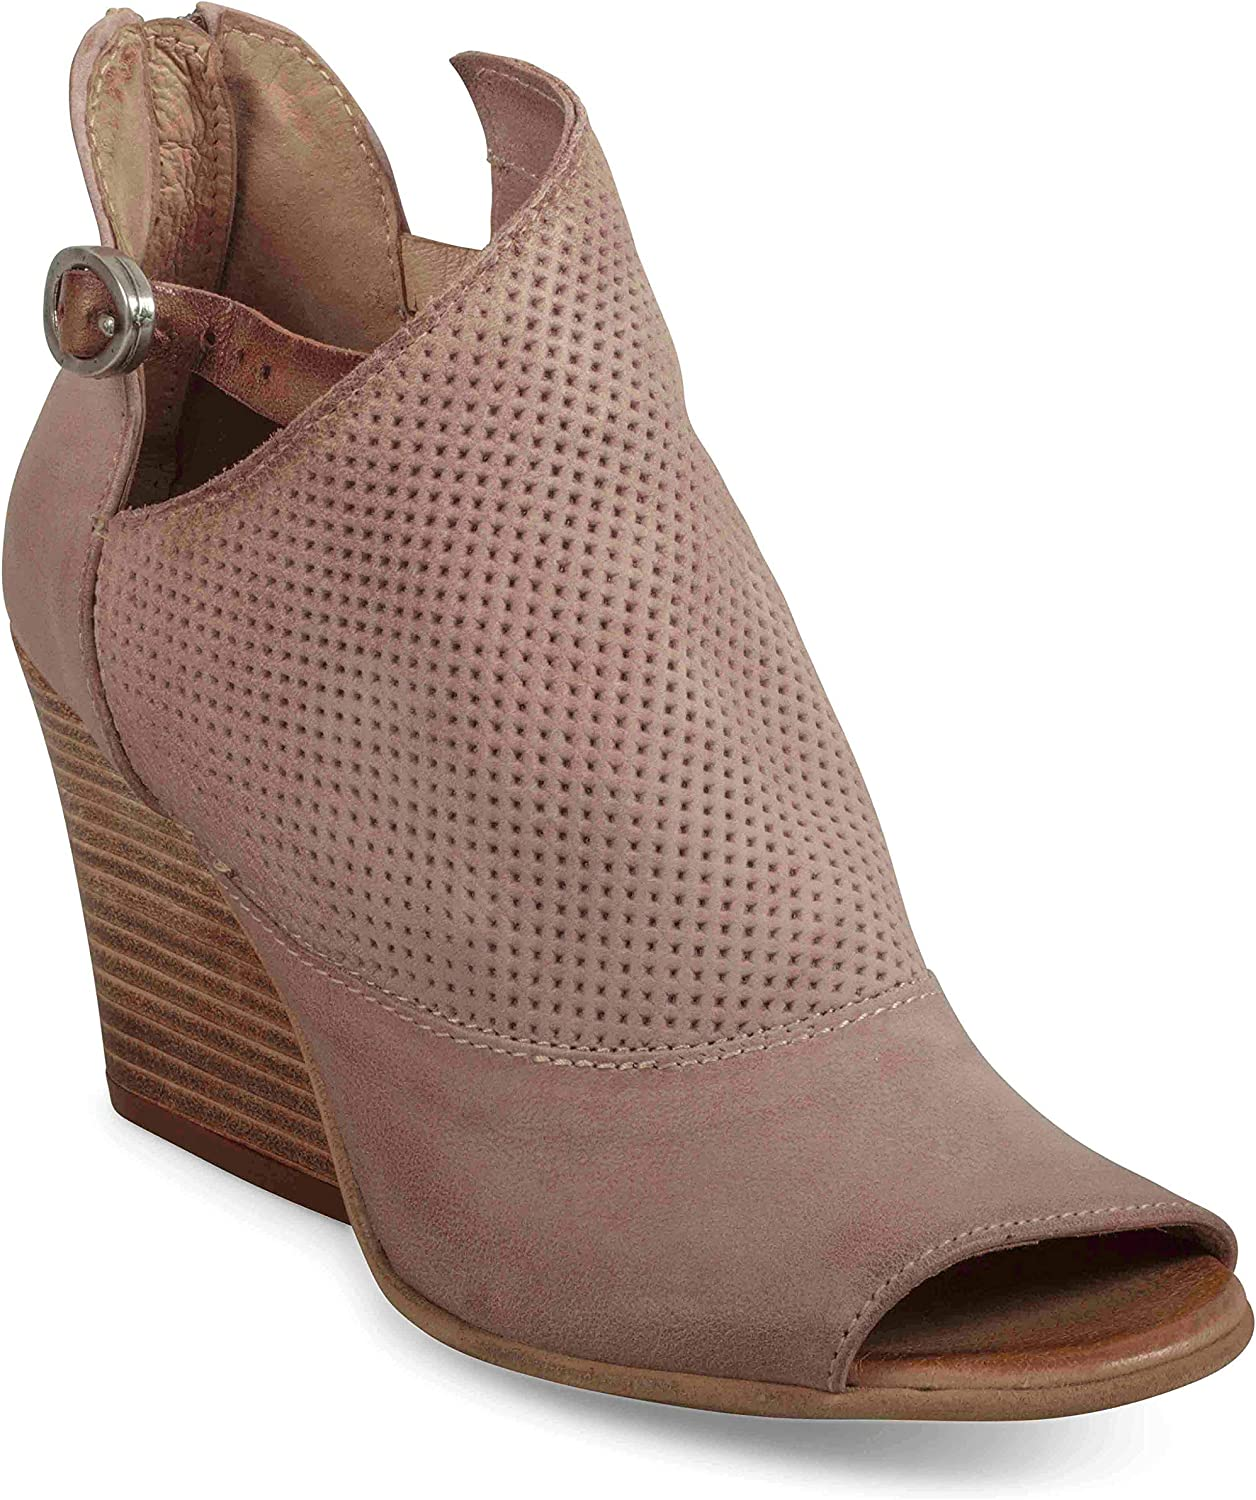 Miz Mooz Women's Knox in Pearl